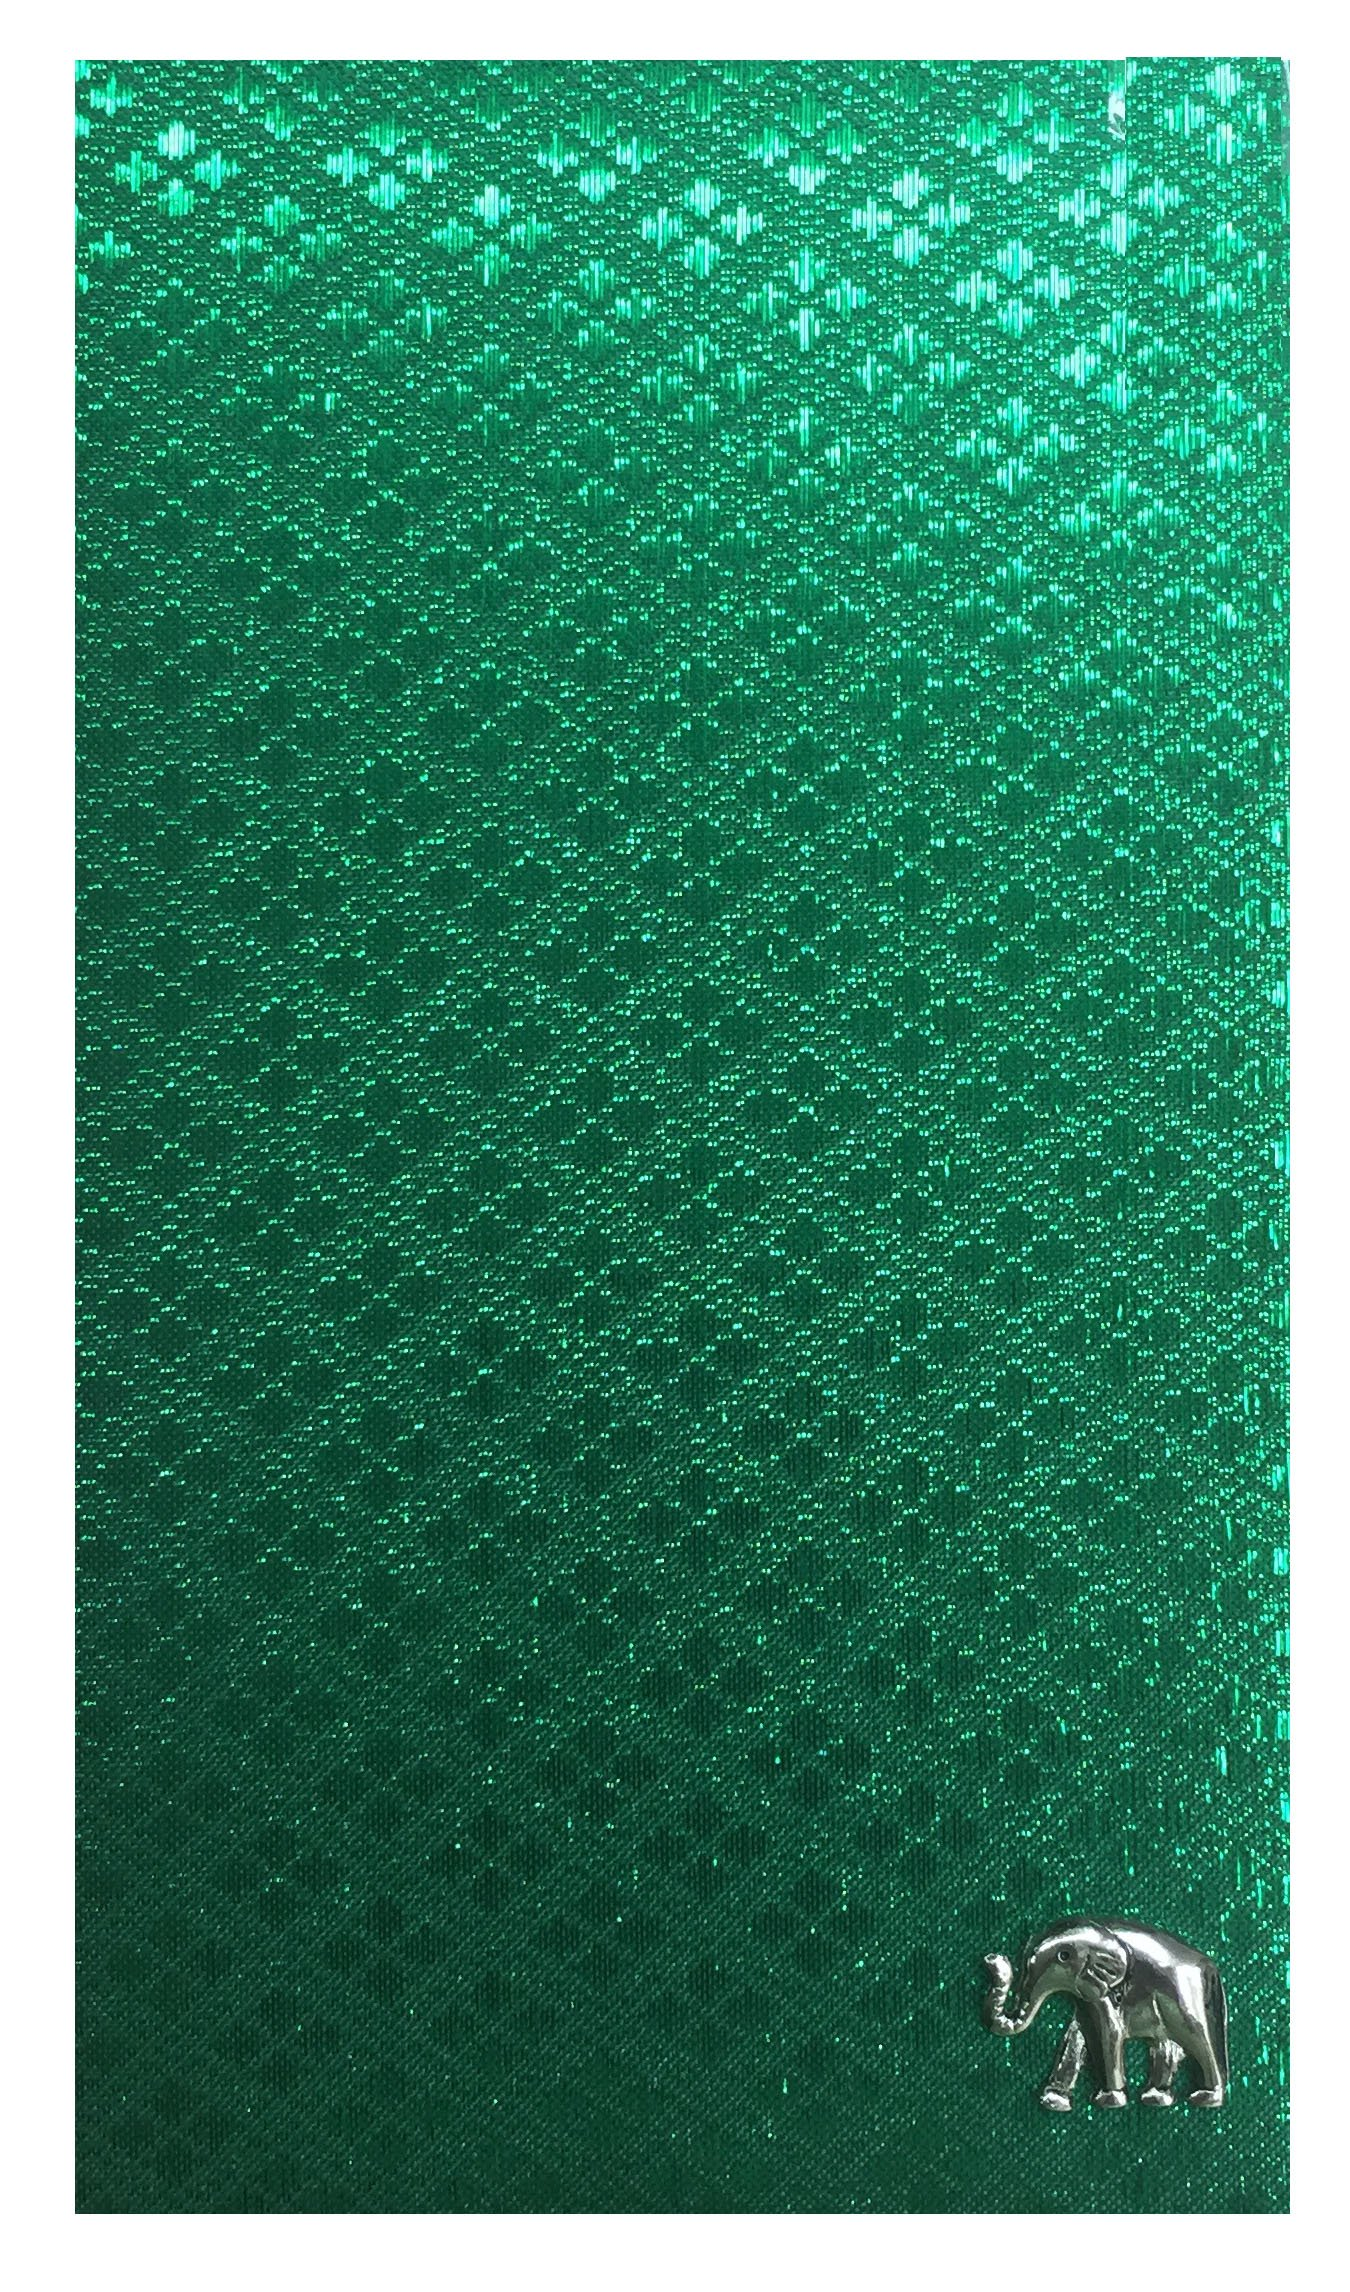 Check Registers Green Thai Fabric Guest Check Presenter, Check Book Holder for Restaurant, Checkbook Cover, Waitstaff Organizer, Server Book for Waiters with Money Pocket (With Plastic Cover)